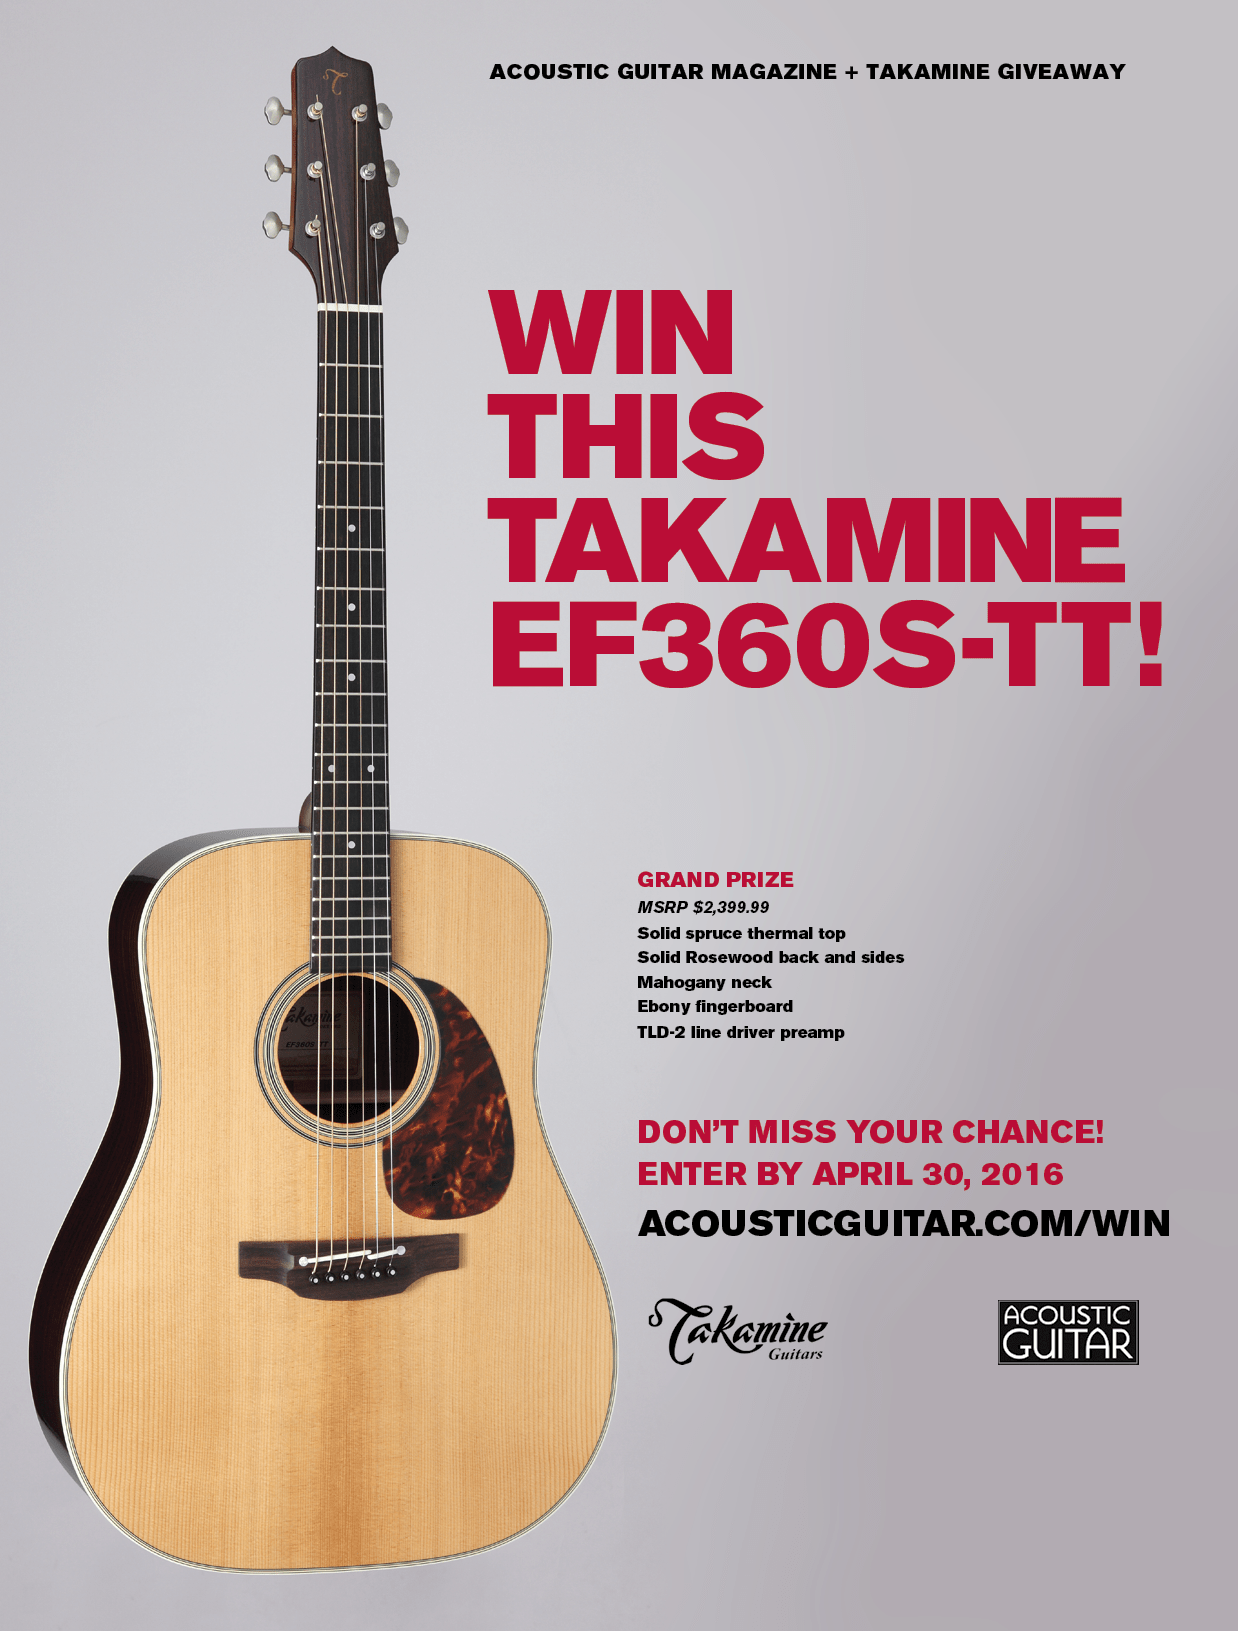 Win This Takamine EF360S-TT! – Acoustic Guitar